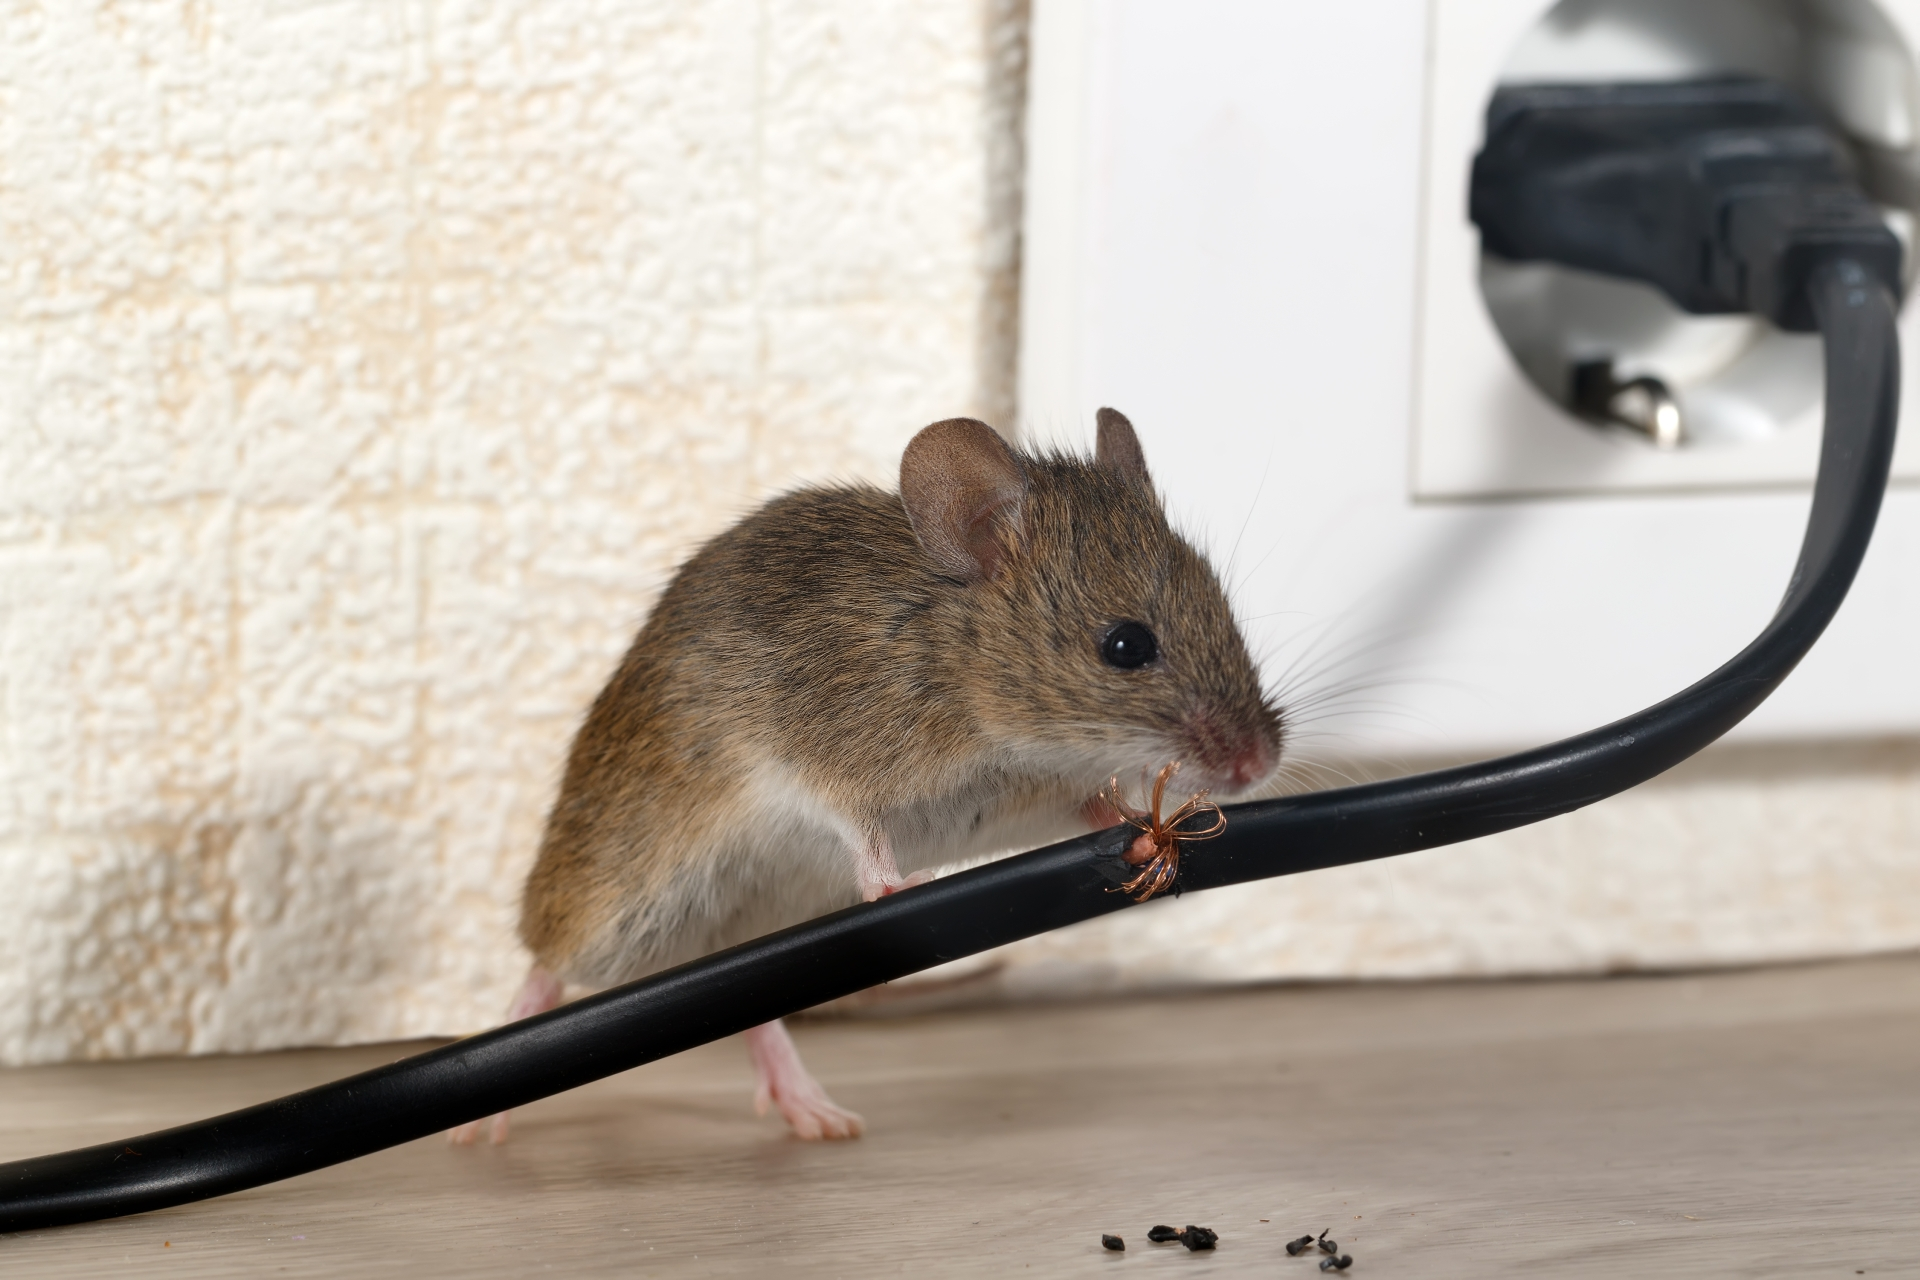 Mice Infestation, Pest Control in Lambeth, SE11. Call Now 020 8166 9746